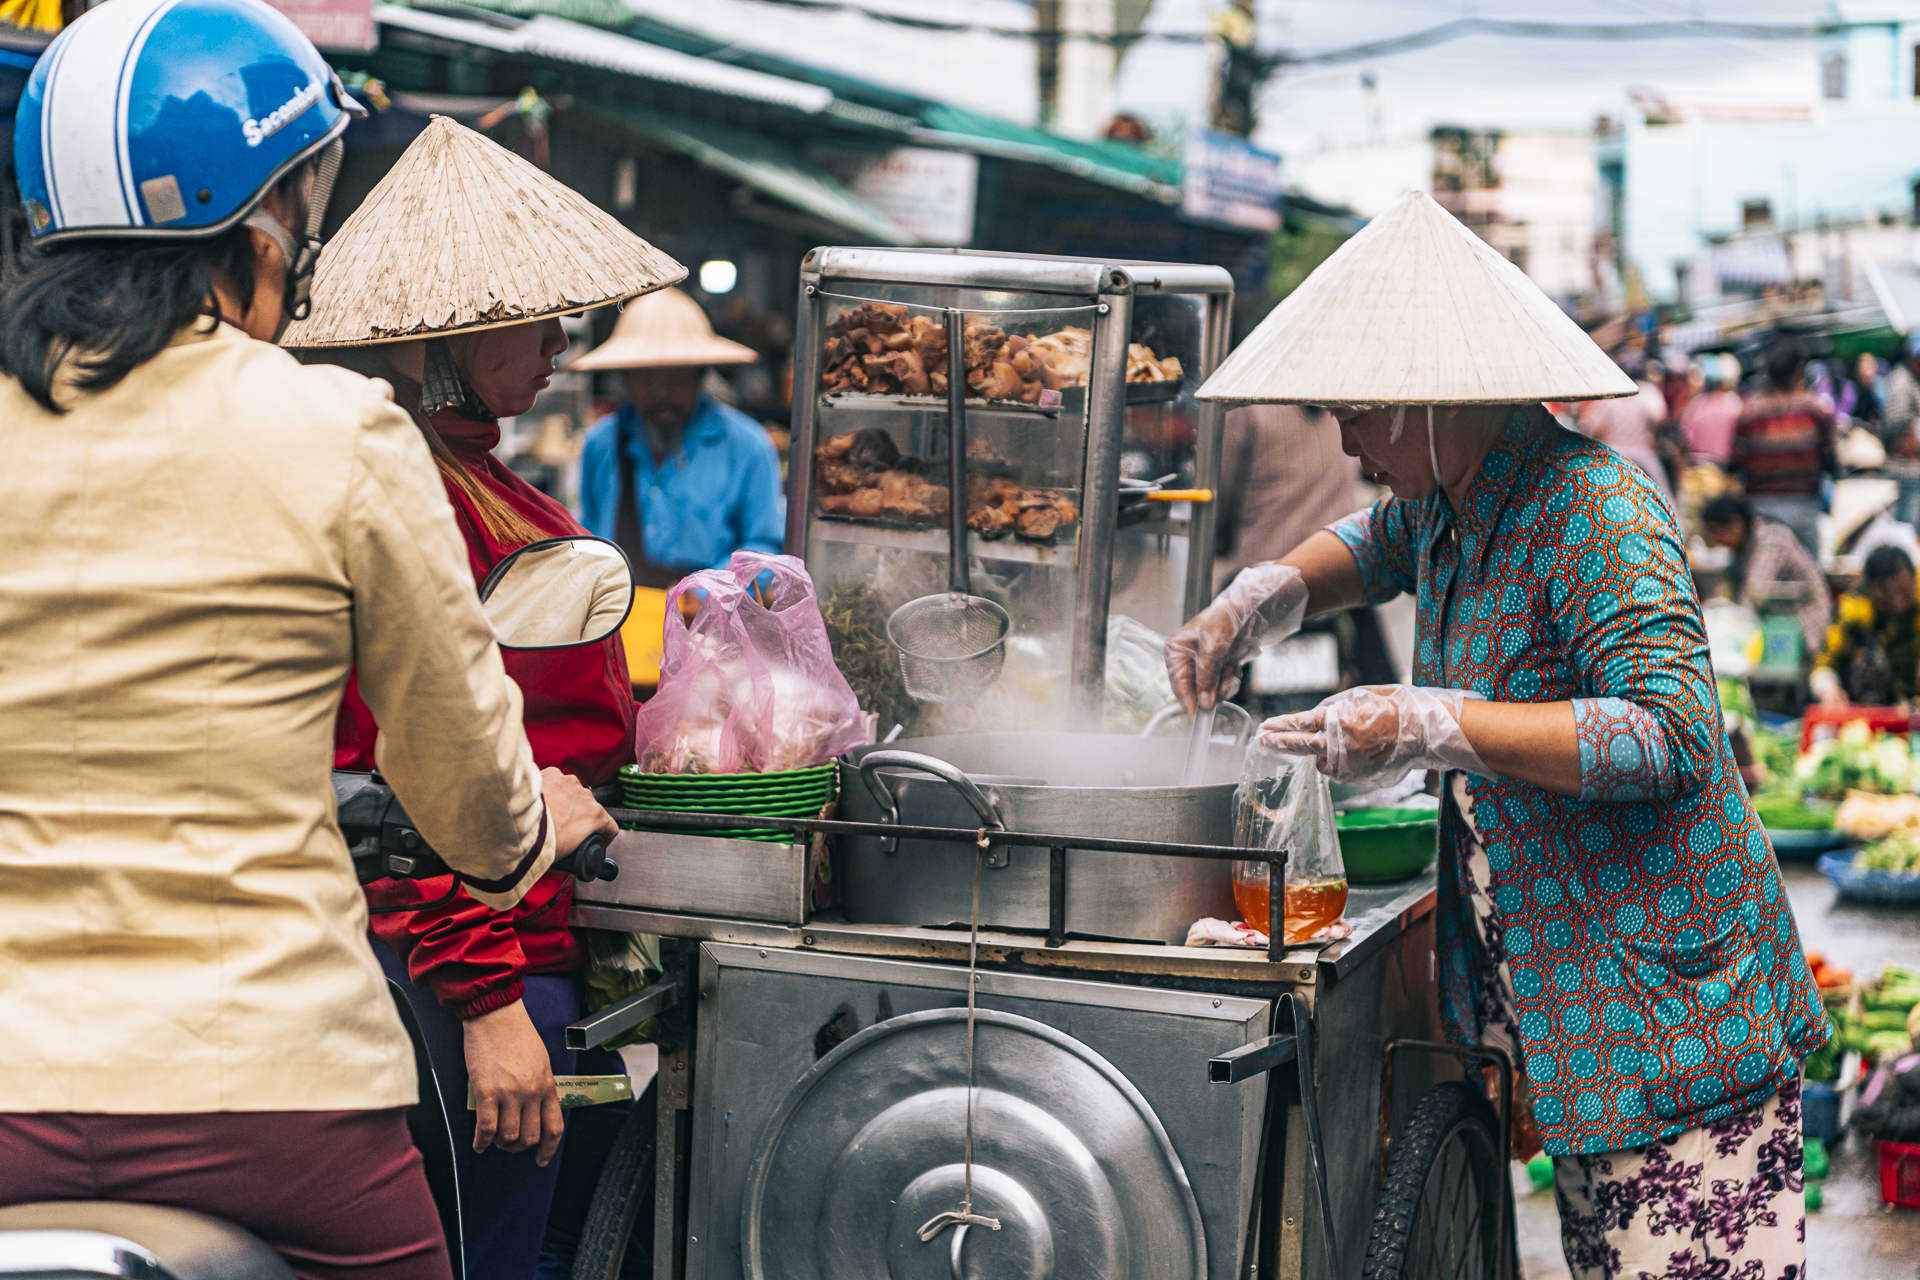 Breakfast is served at the Duong Dong market.